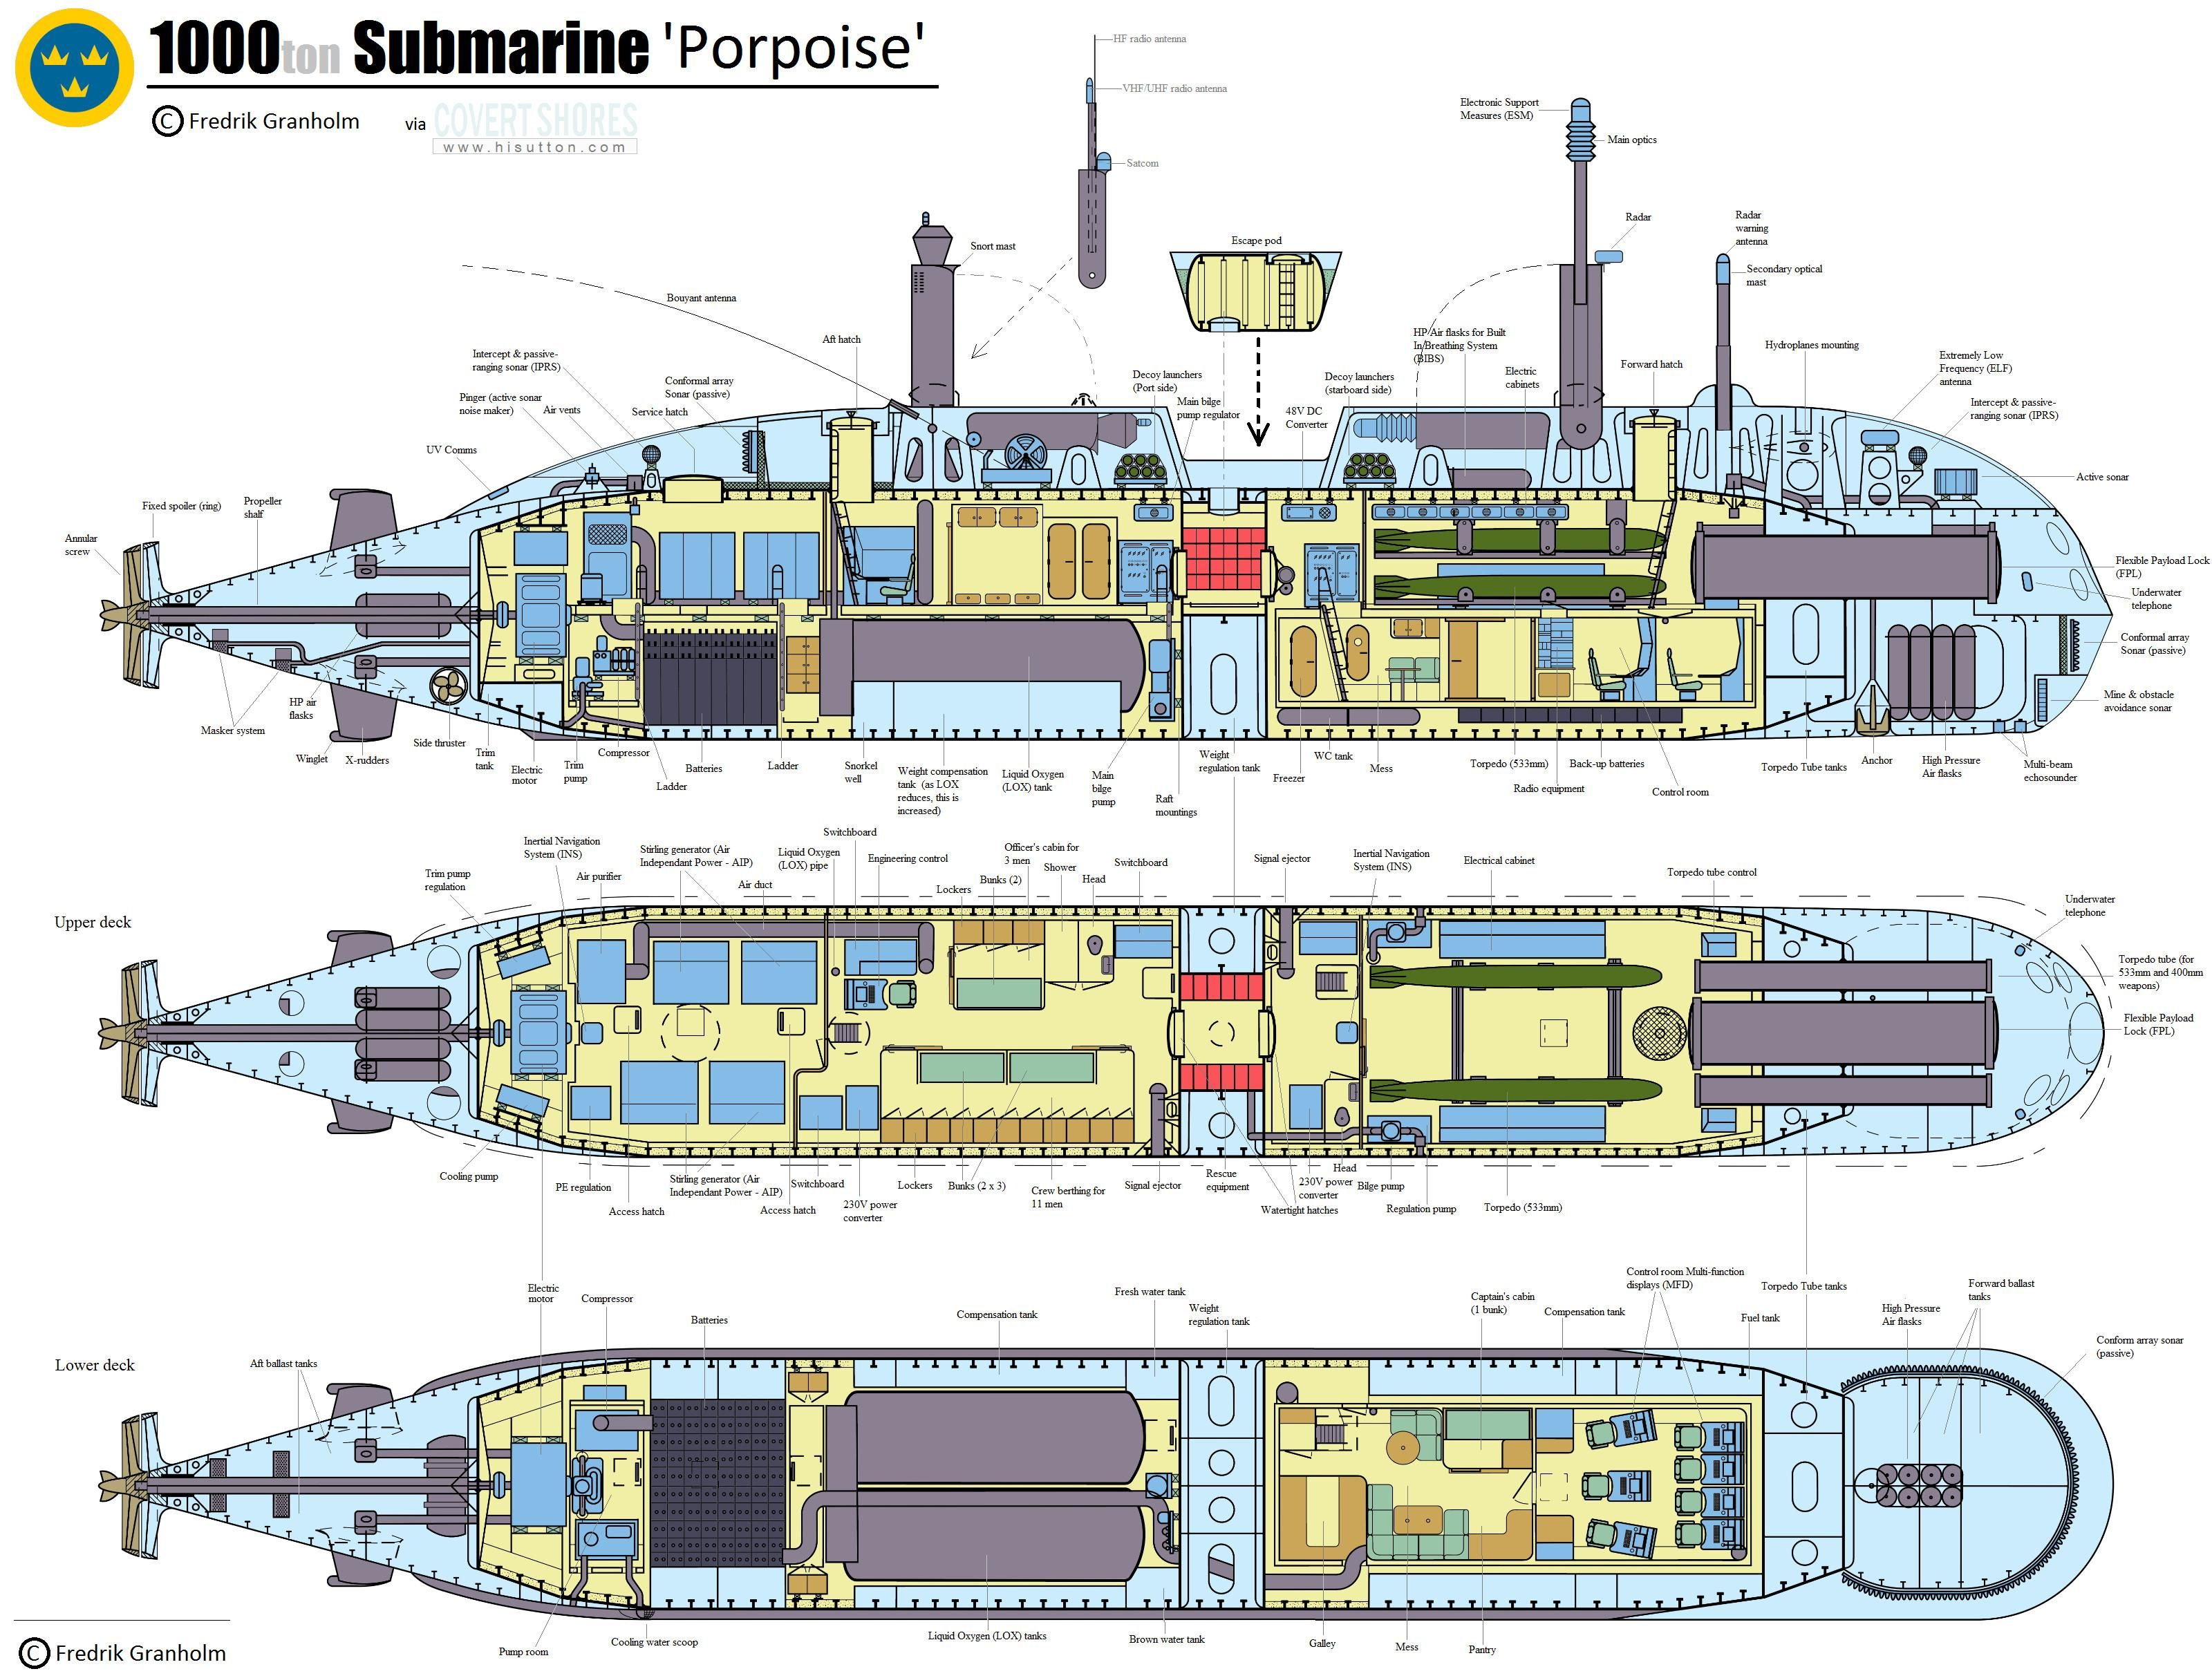 retired navy guy's incredibly detailed design for an aip